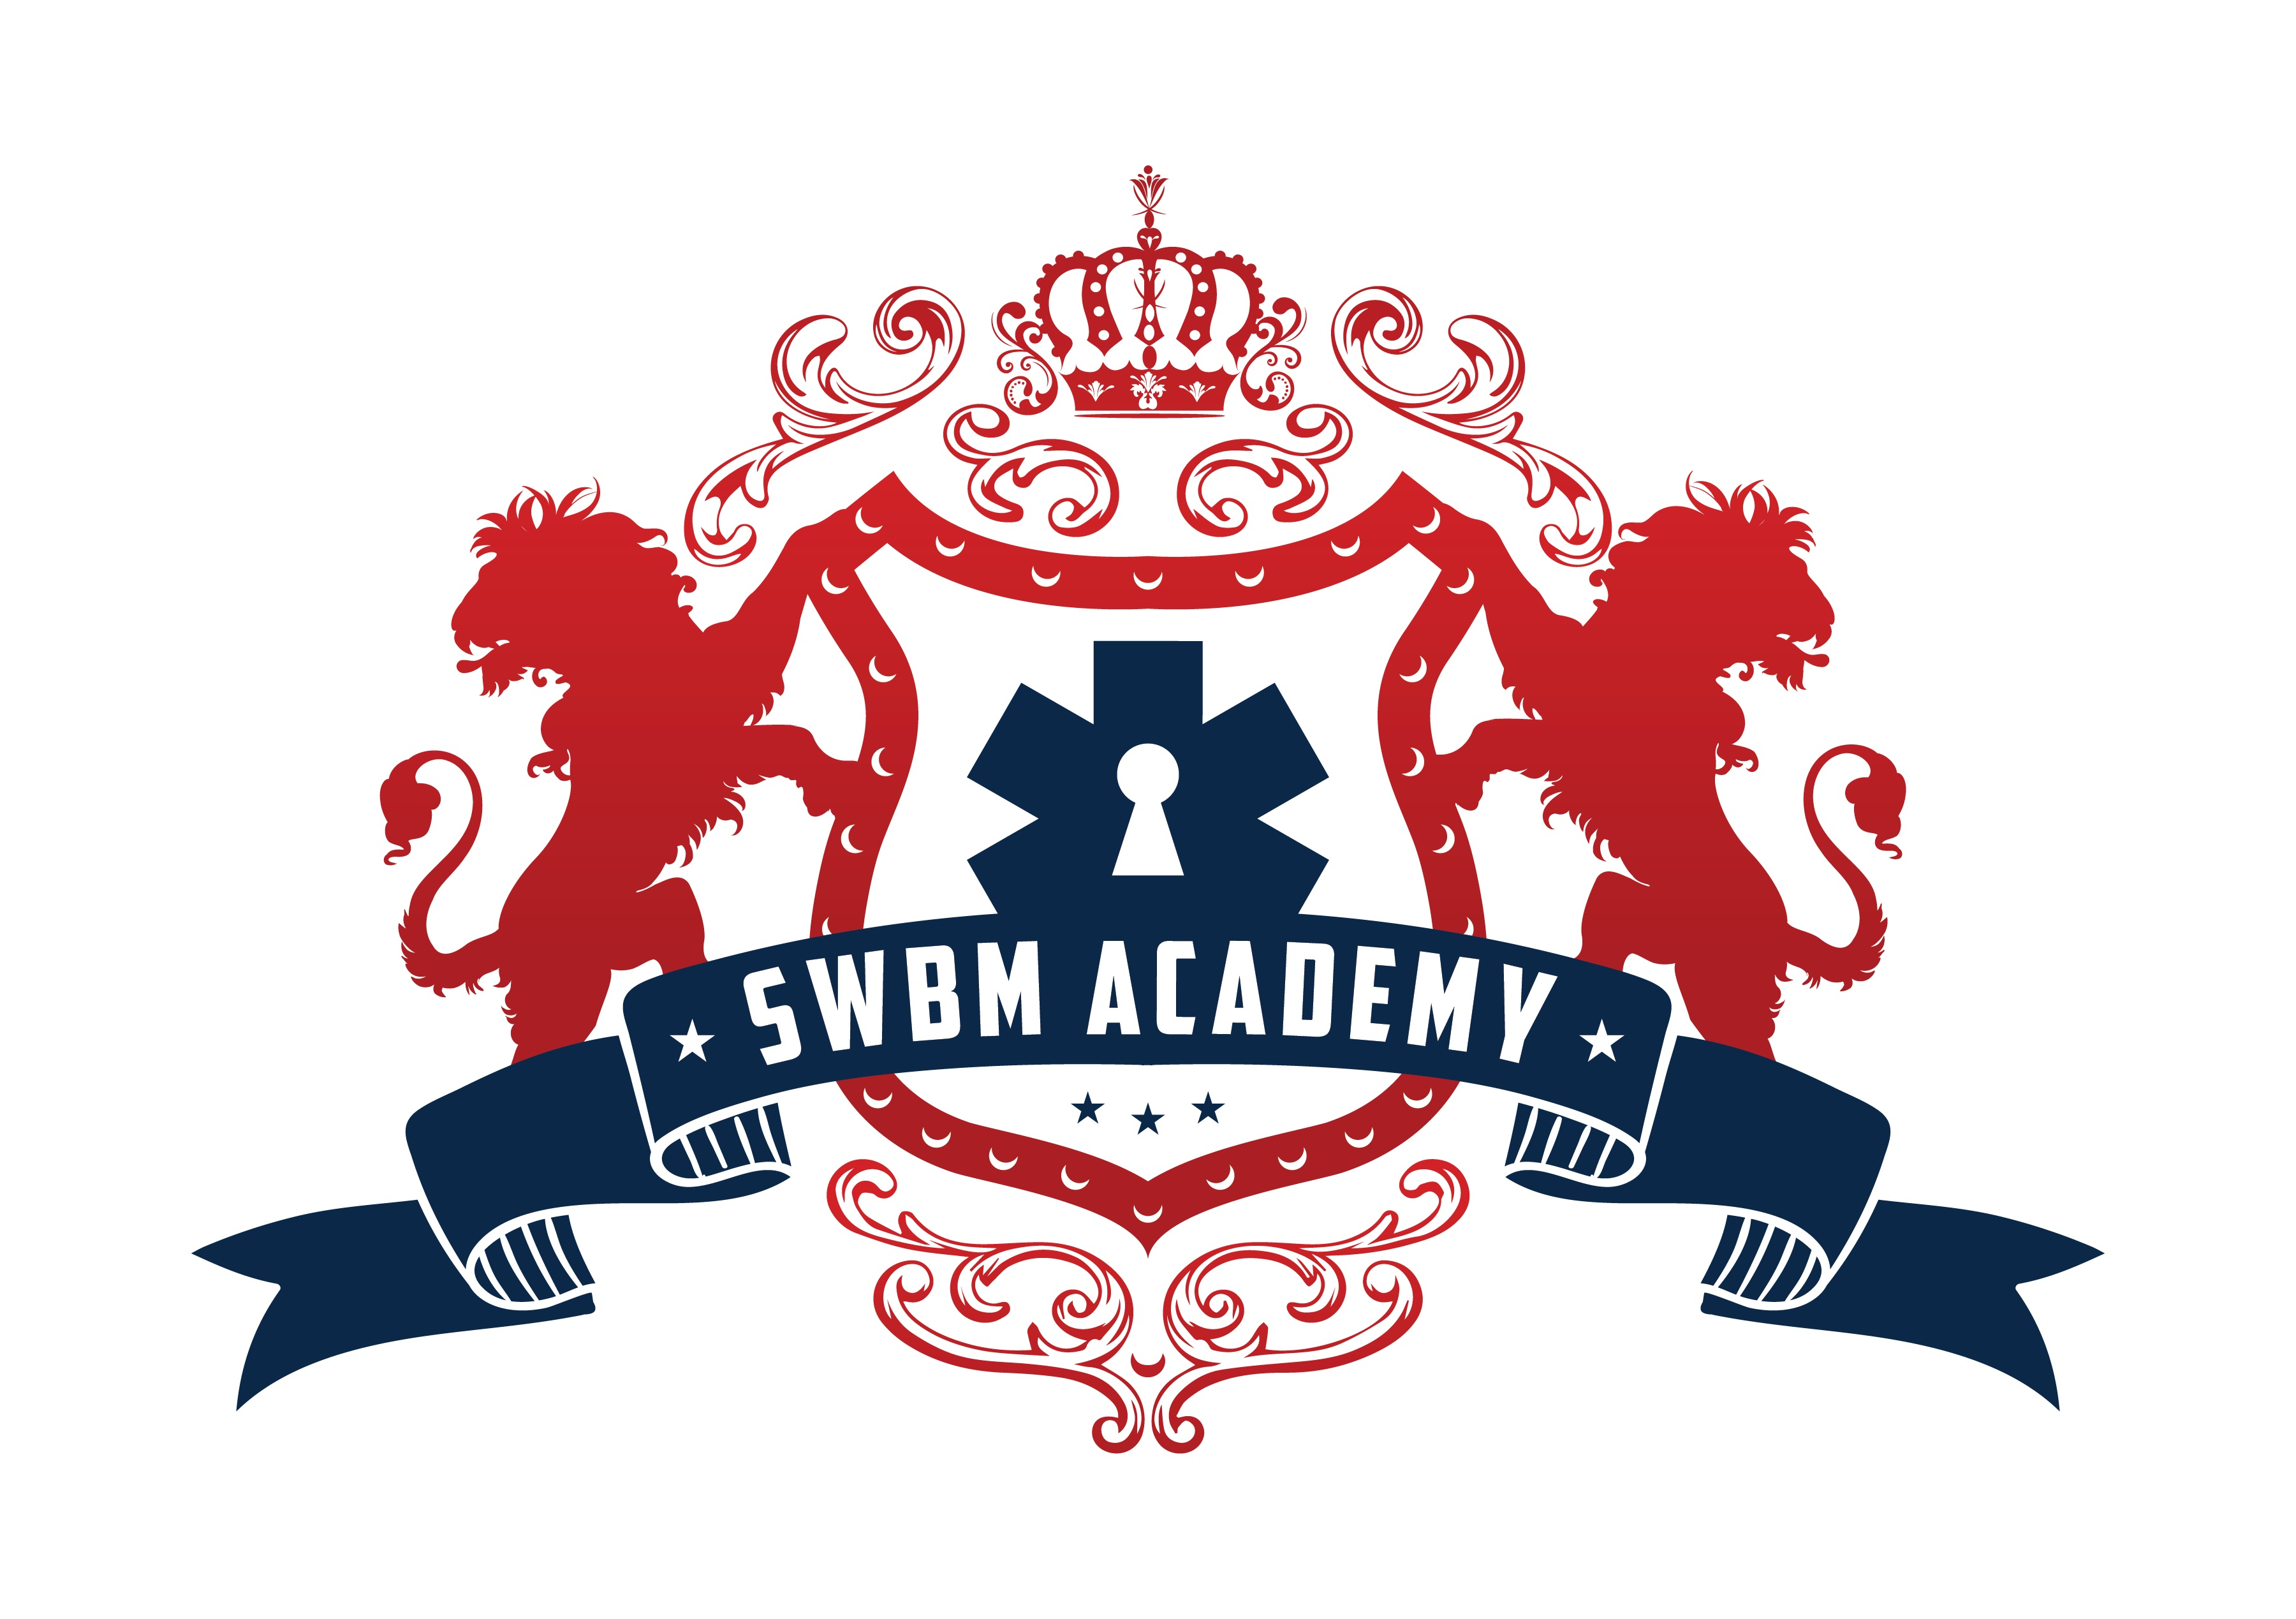 More about SWBM Academy